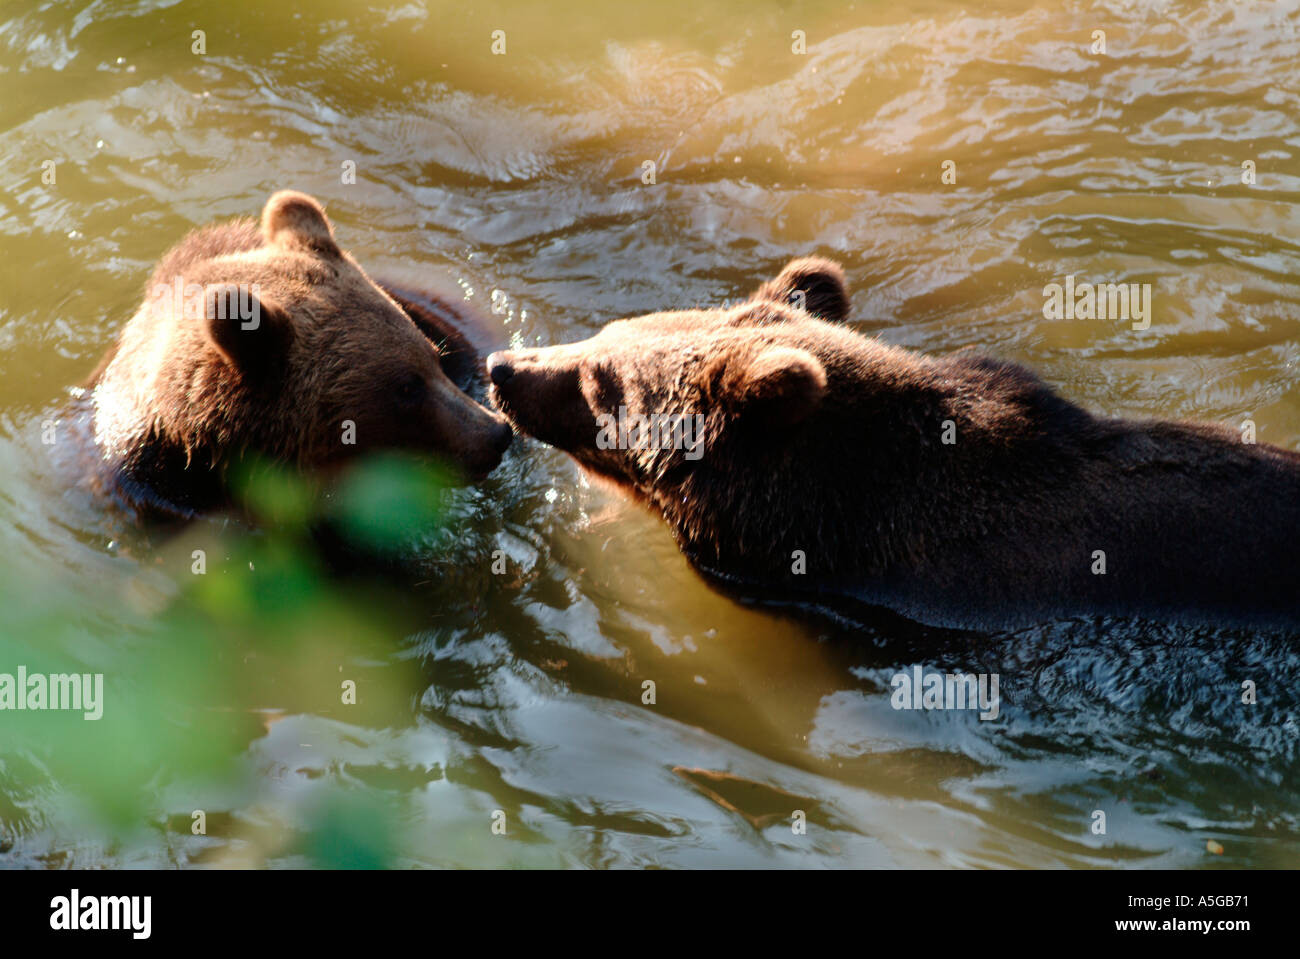 Two young 1 1 2 years old brown bear siblings Ursus arctos playing in a pond Blurred  - Stock Image